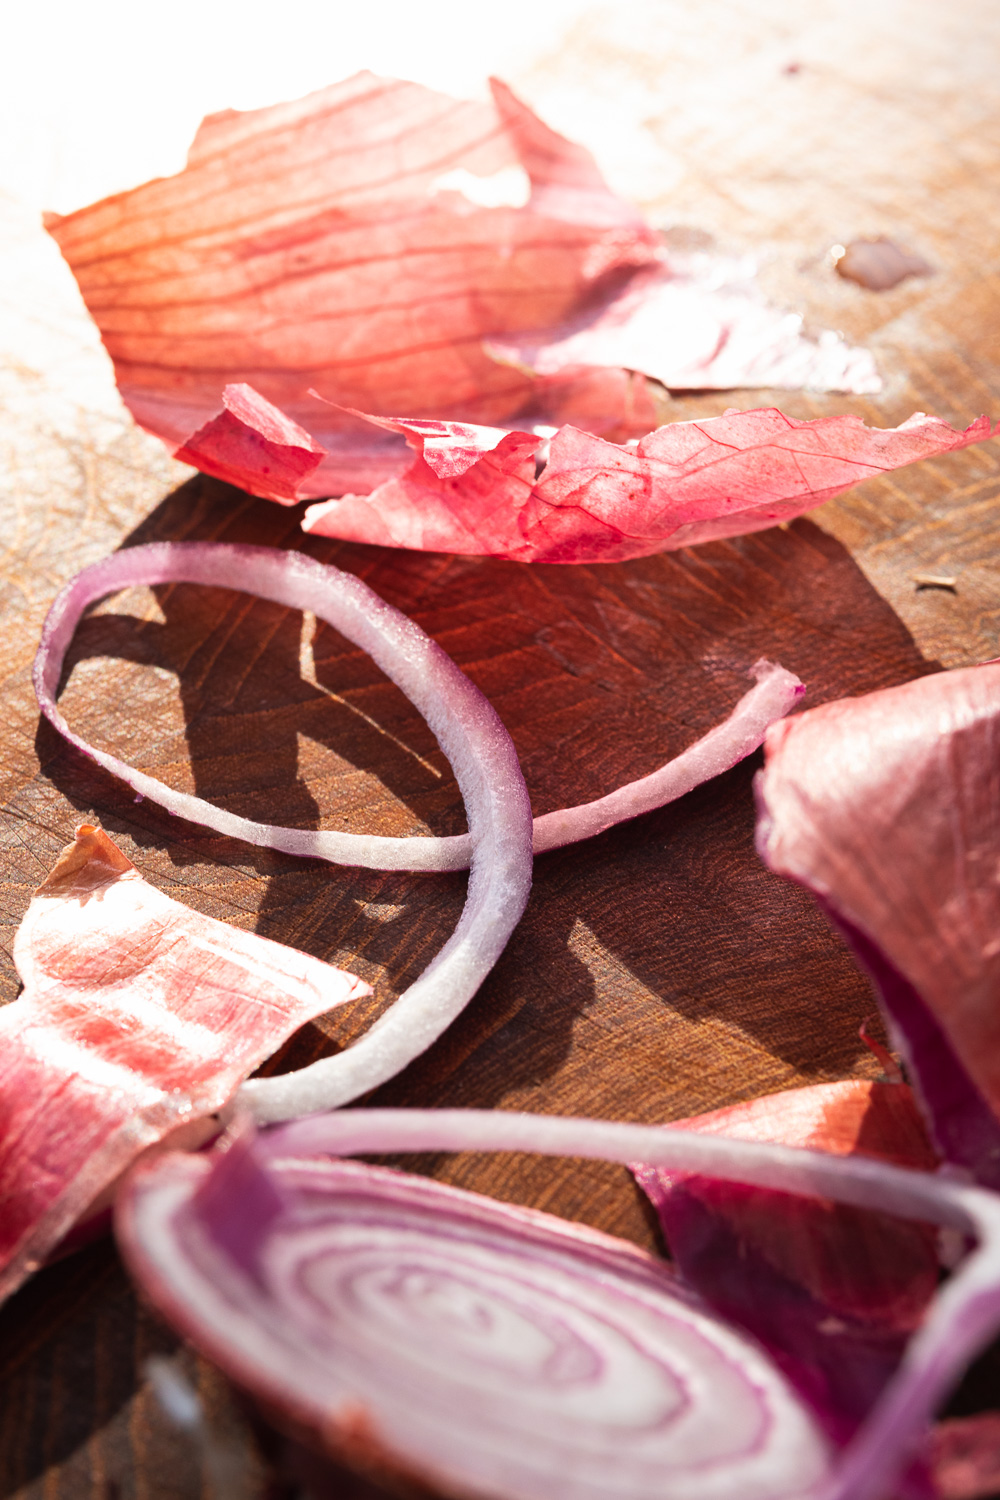 red onion slices and skin on a wooden end-grain cutting board